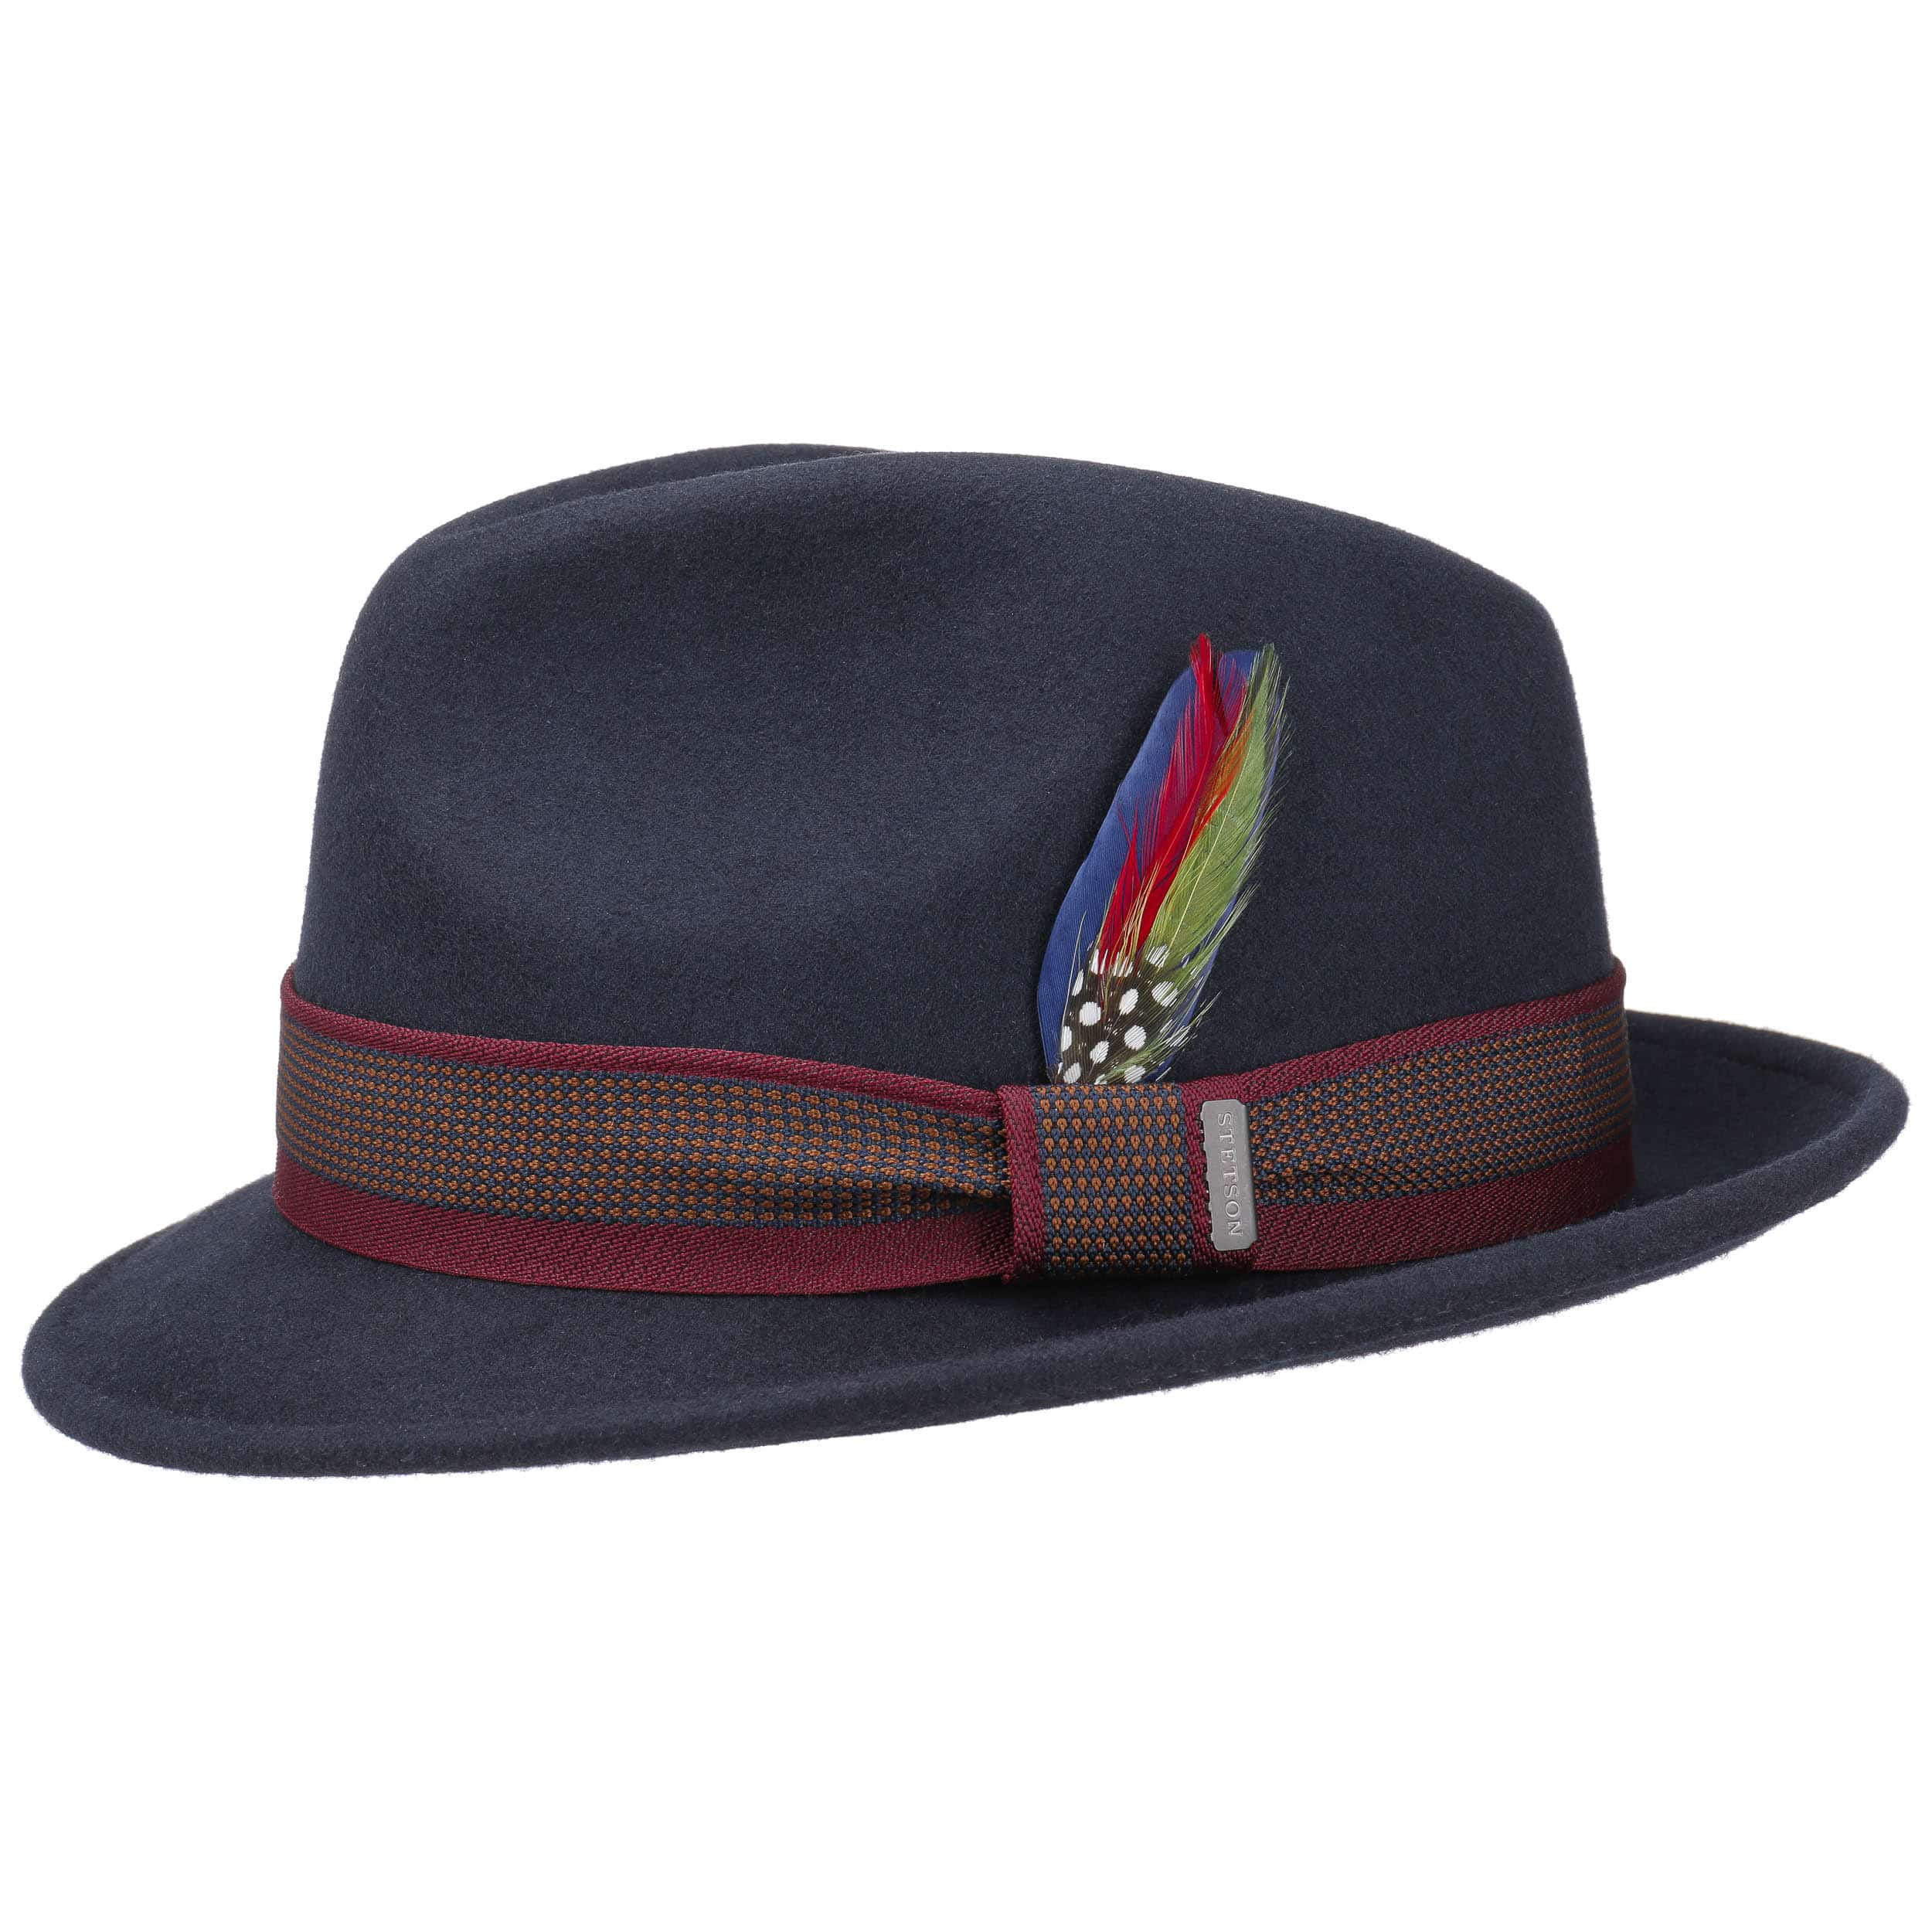 ... Cappello di Feltro Wyoming Player by Stetson - blu scuro 1 ... fd0299da2e3d